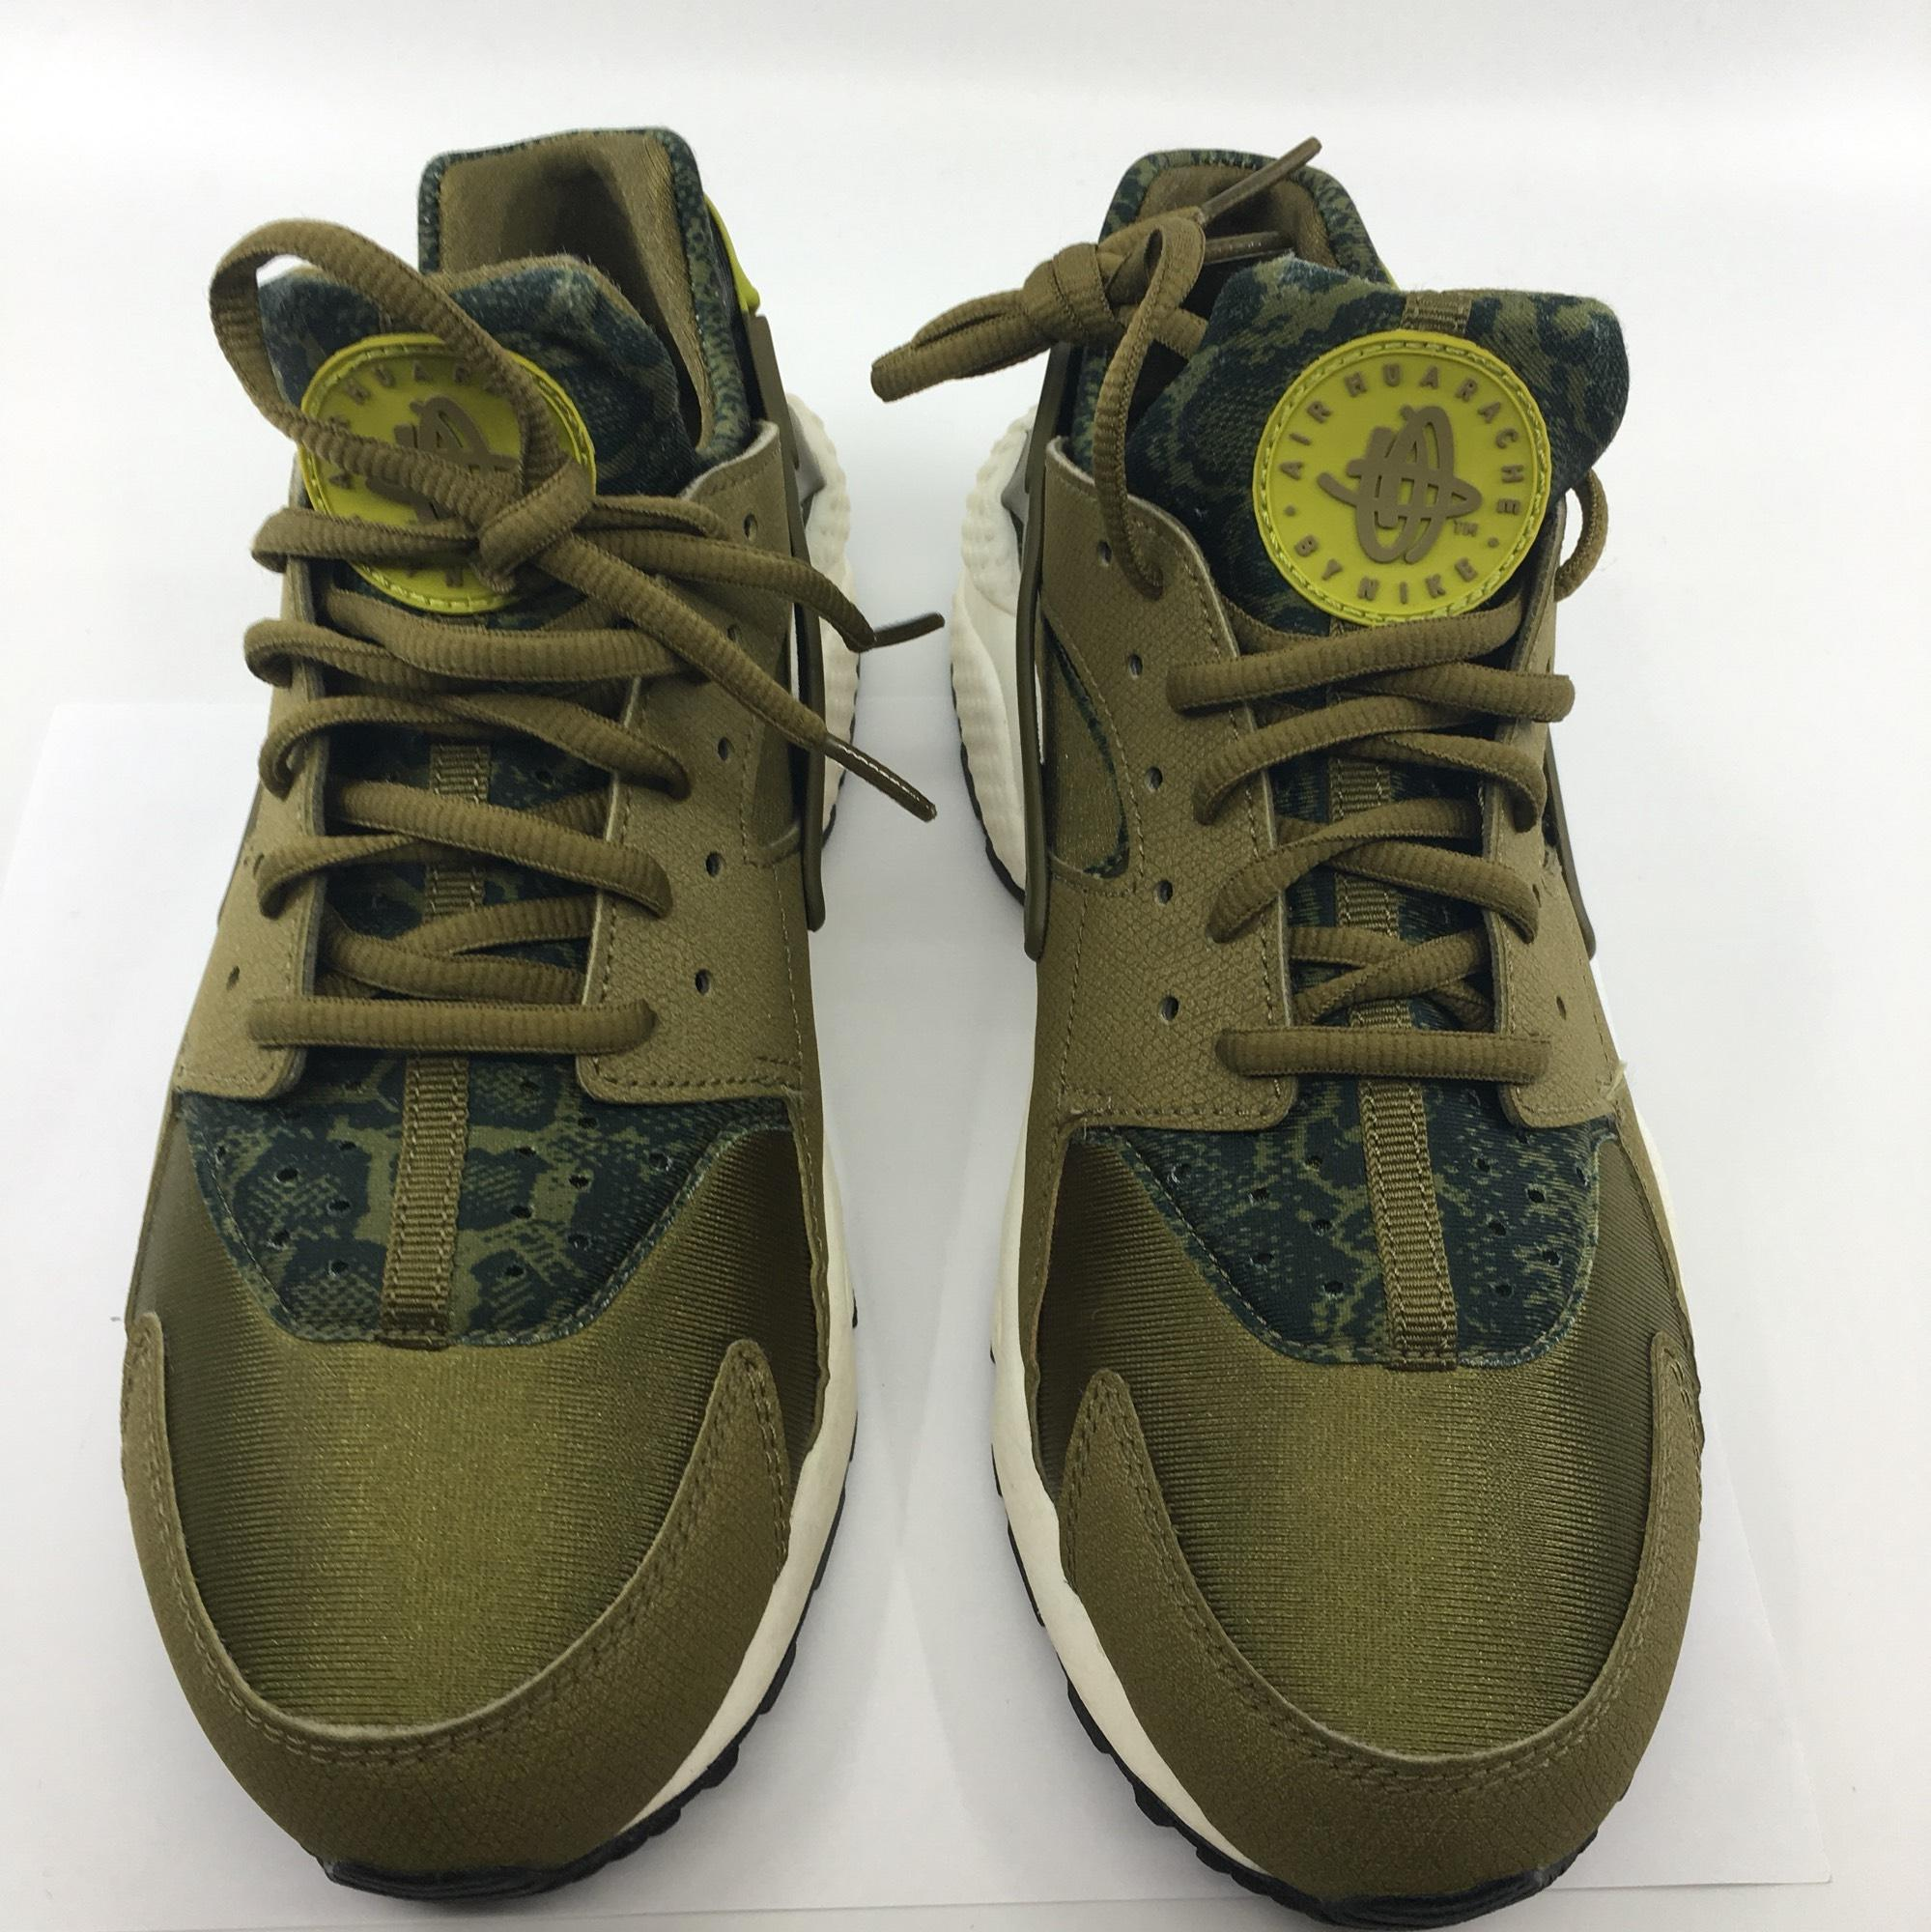 Pour Faapsy Nike Noir Courir Et Chaussures Dh9e2yiew Olive Vert 057f66 N8wkX0OnP